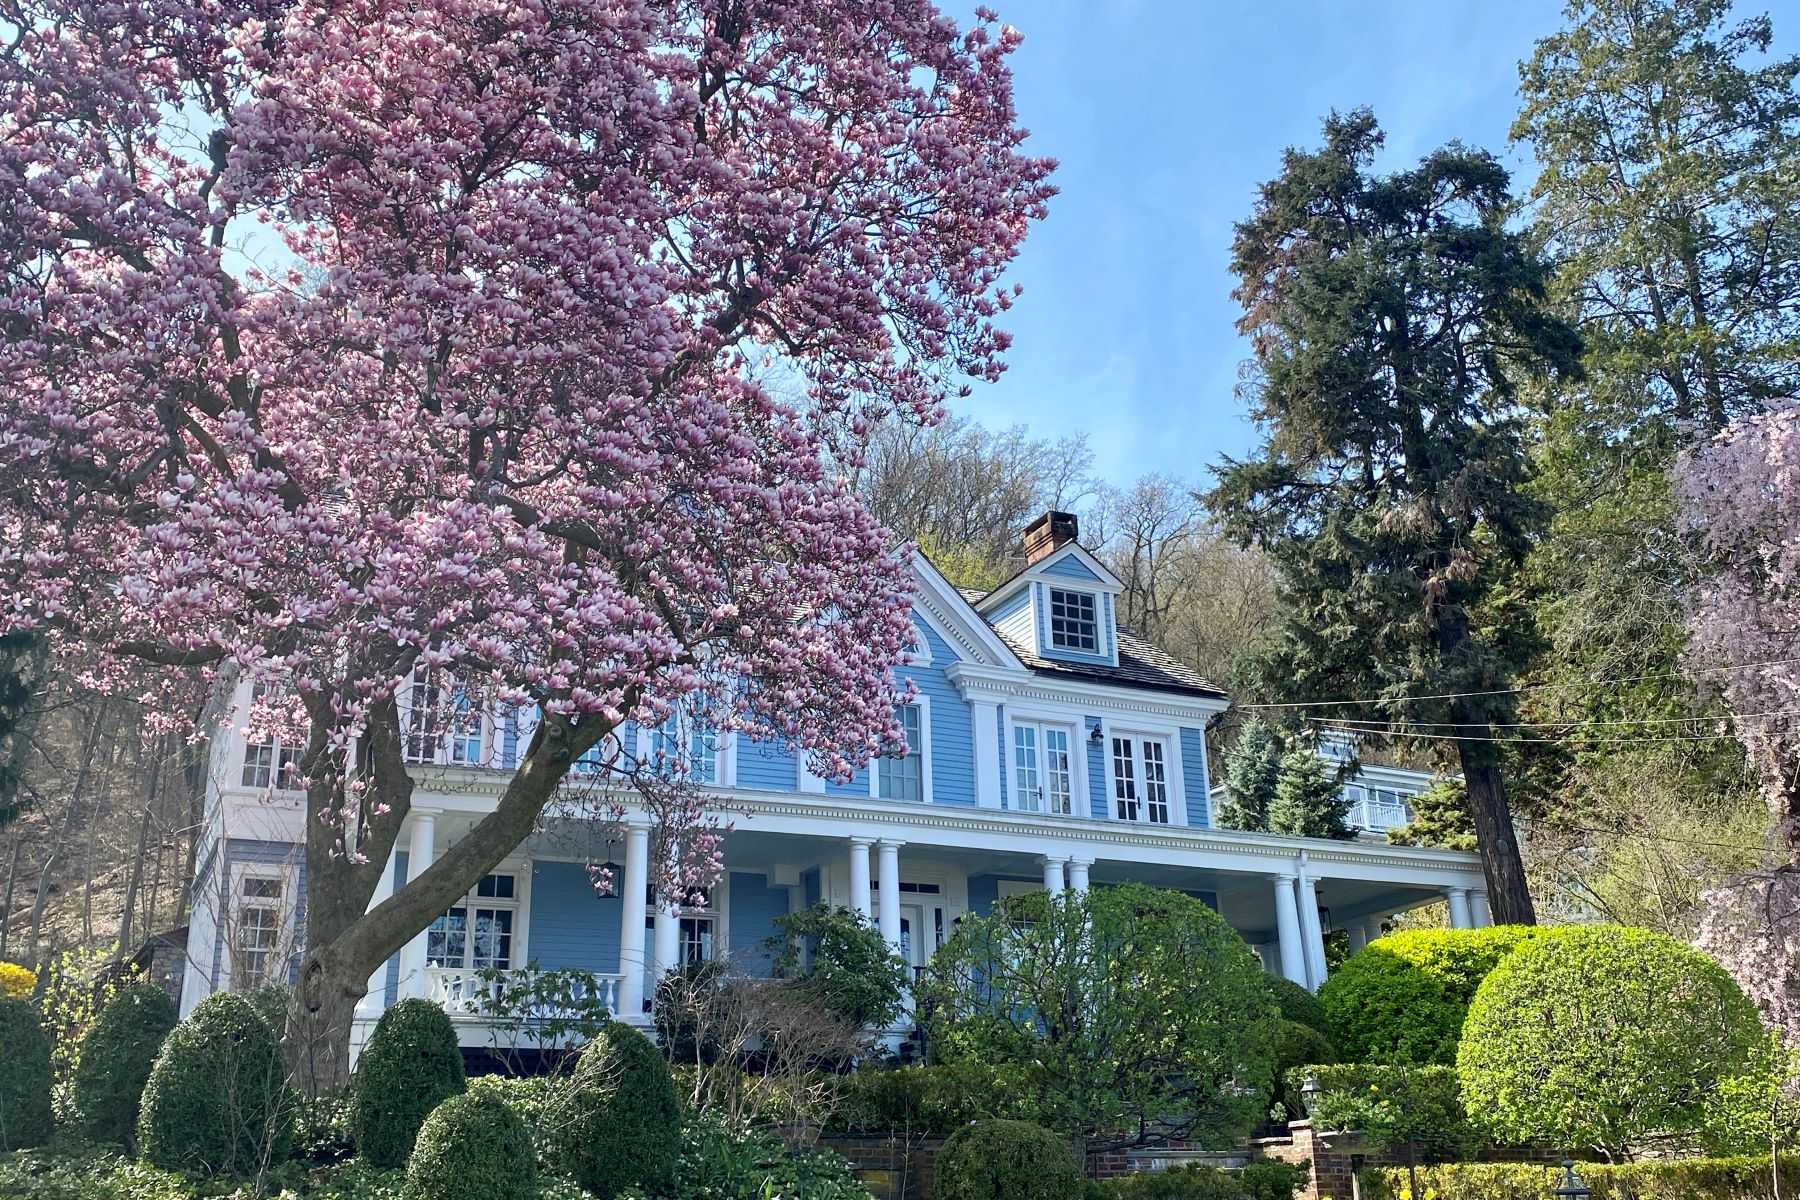 Single Family Homes for Sale at Hudson River Valley Greek Revival 245 River Road Grandview, New York 10960 United States